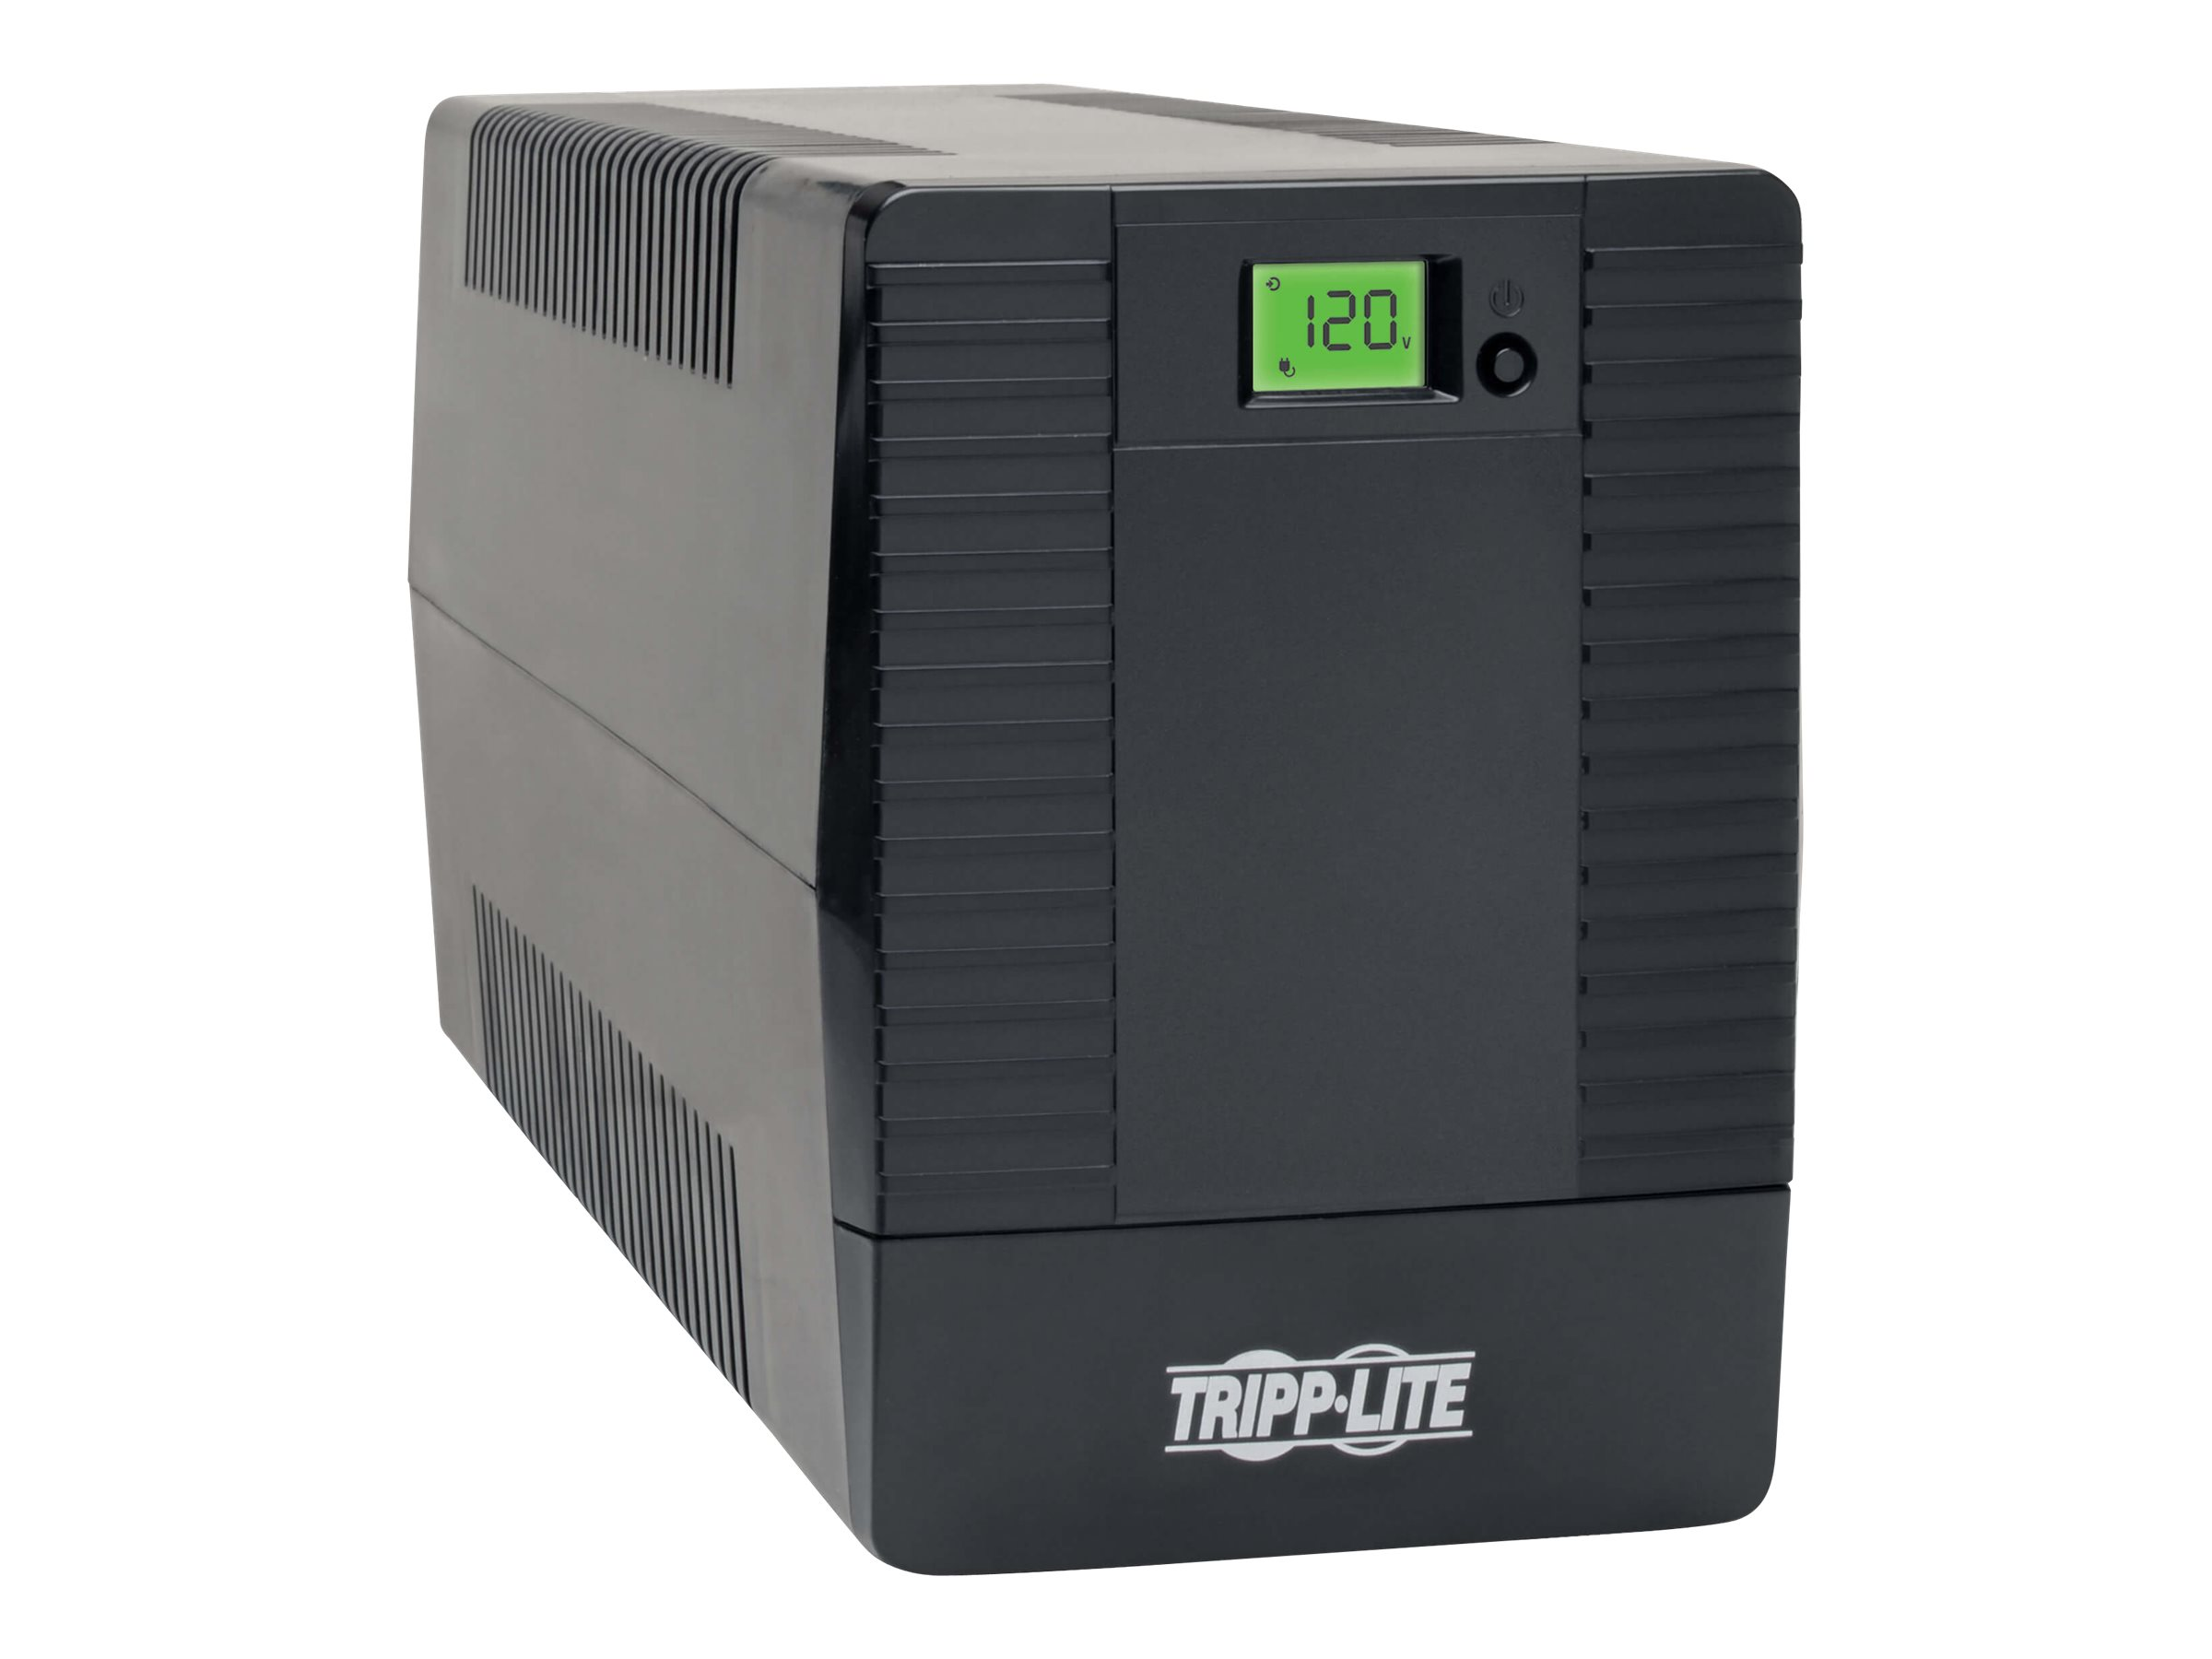 Tripp Lite 1440VA 1200W UPS Smart Tower Battery Back Up Desktop AVR USB LCD - UPS - 1200 Watt - 1440 VA